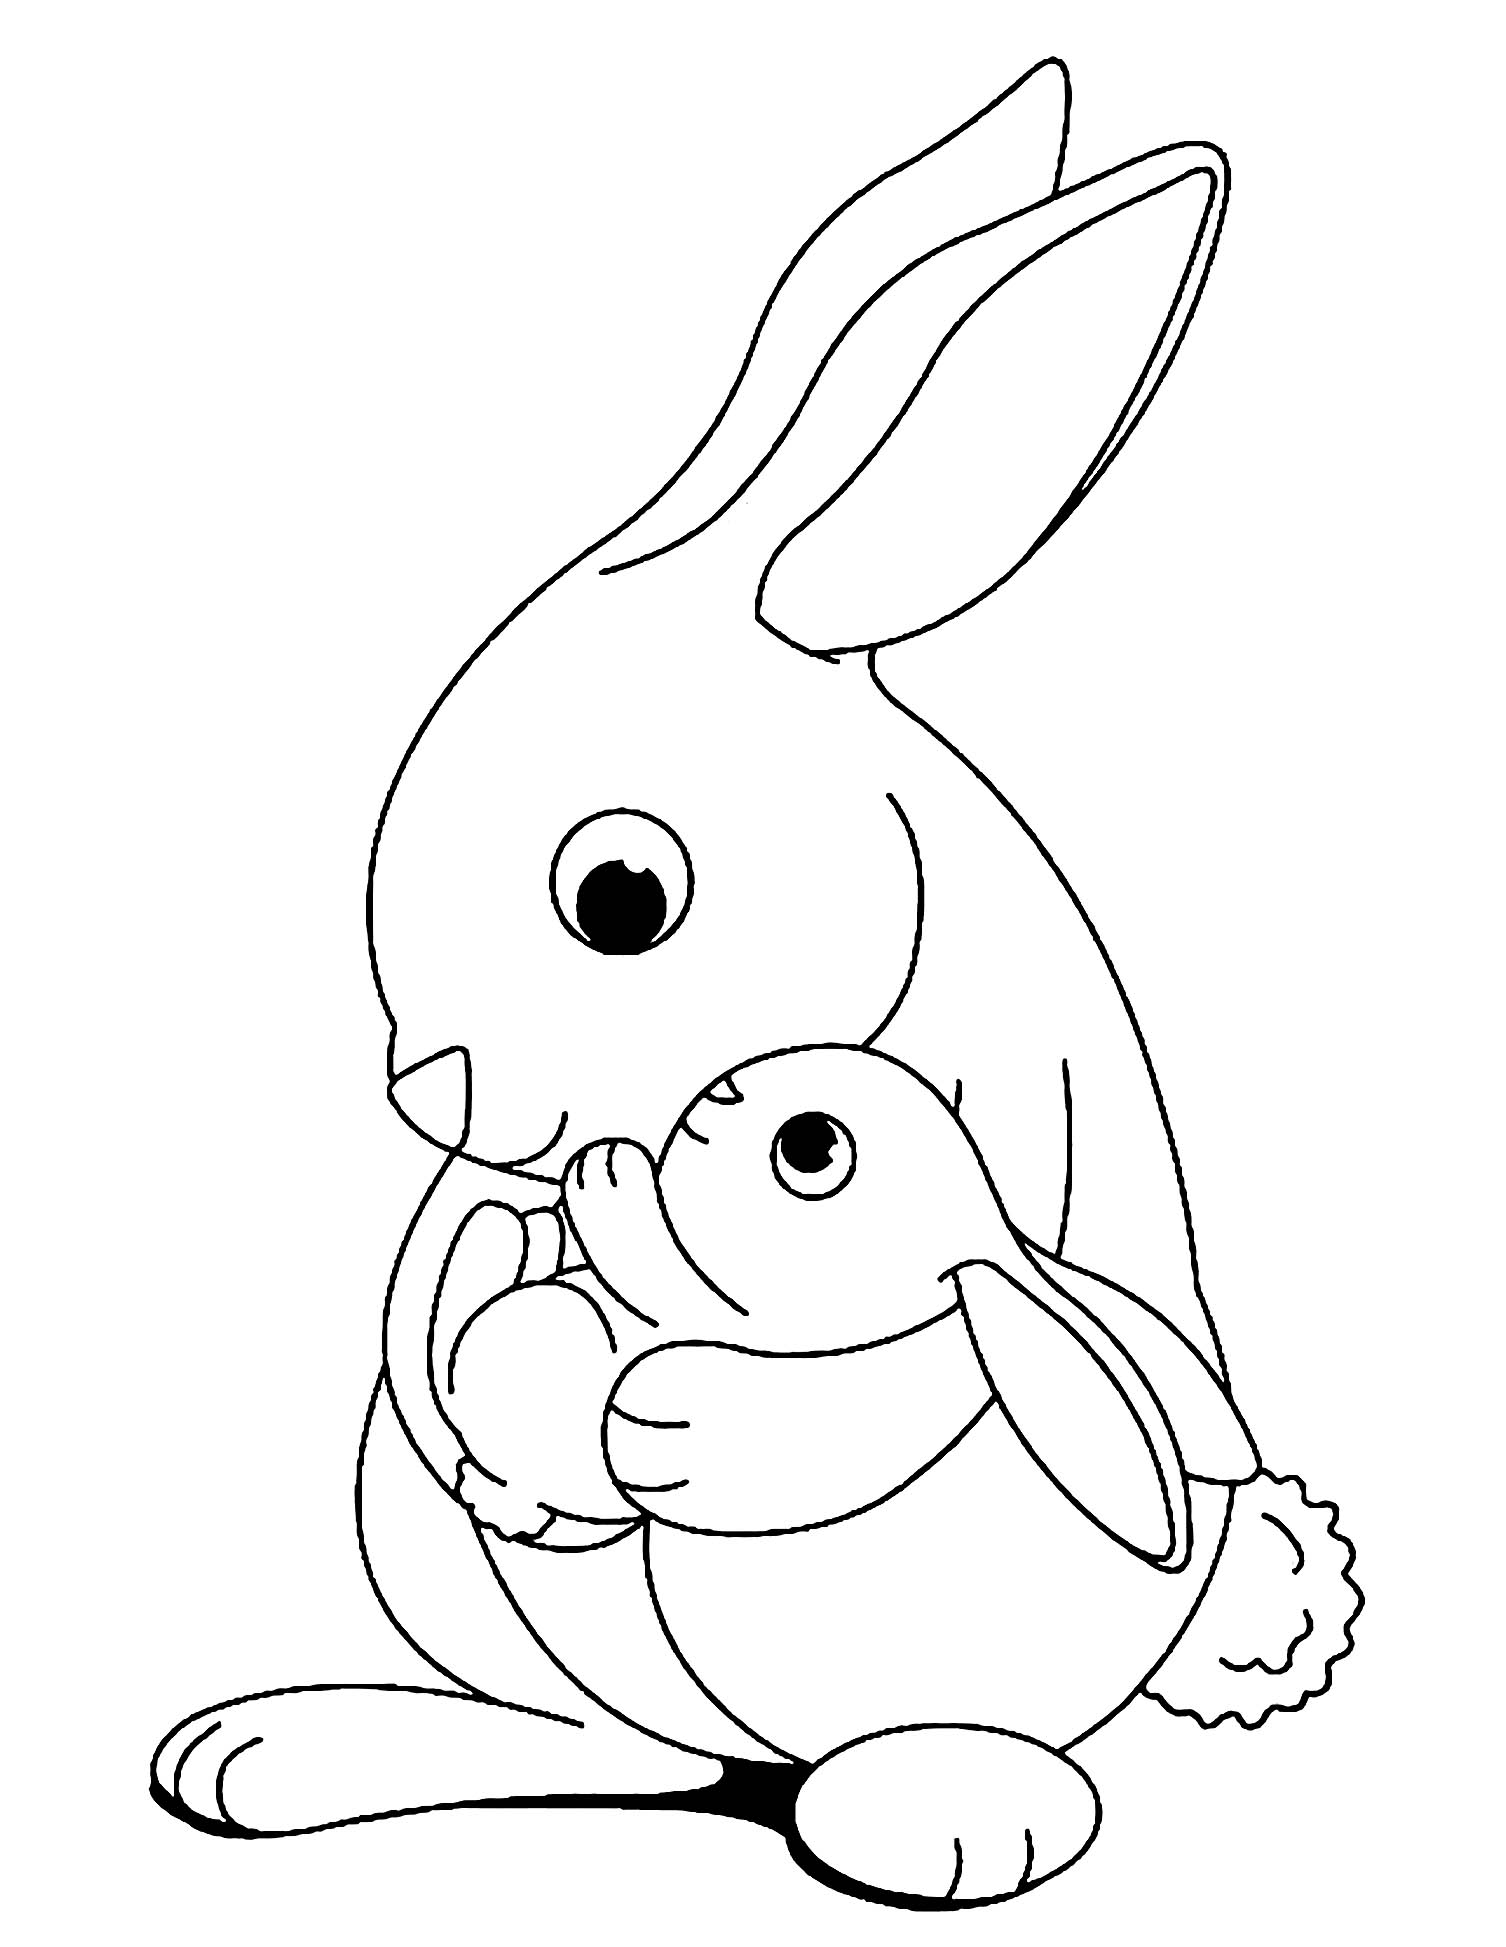 print bunny coloring pages bunny coloring pages best coloring pages for kids bunny print coloring pages